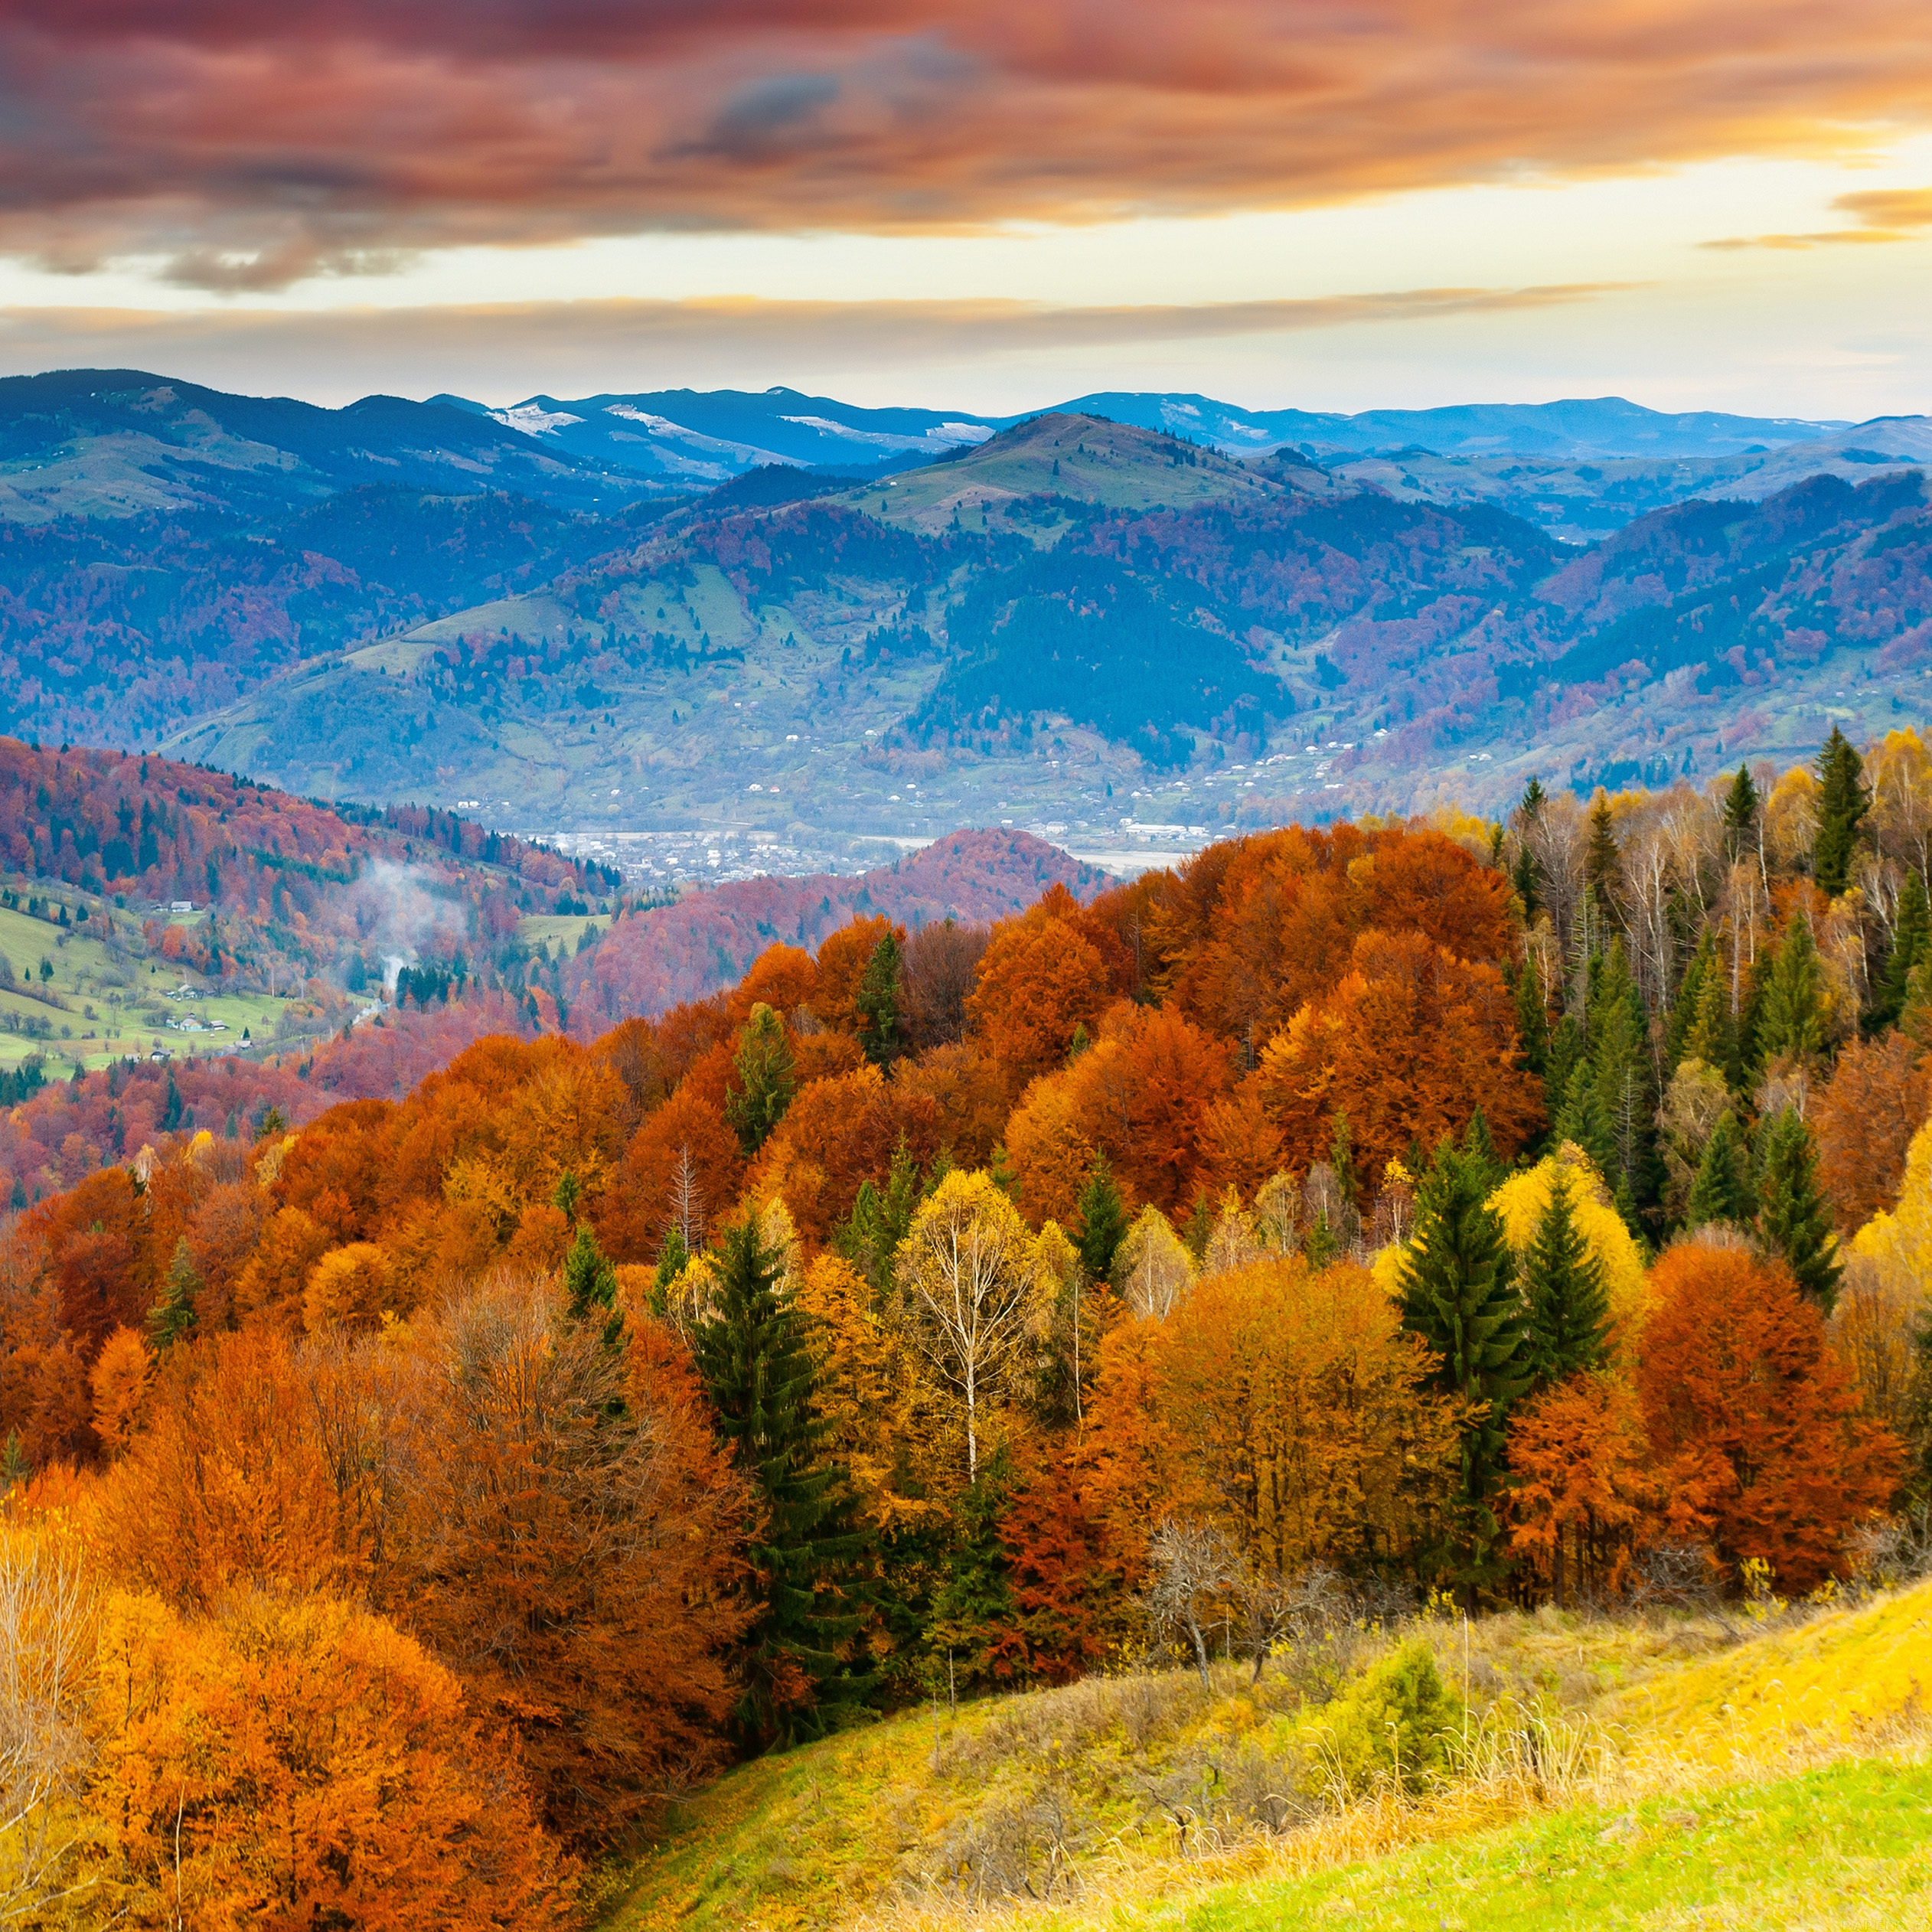 Colorful Fall Wallpapers Of The Week   Fall Trees Mountains 2524x2524